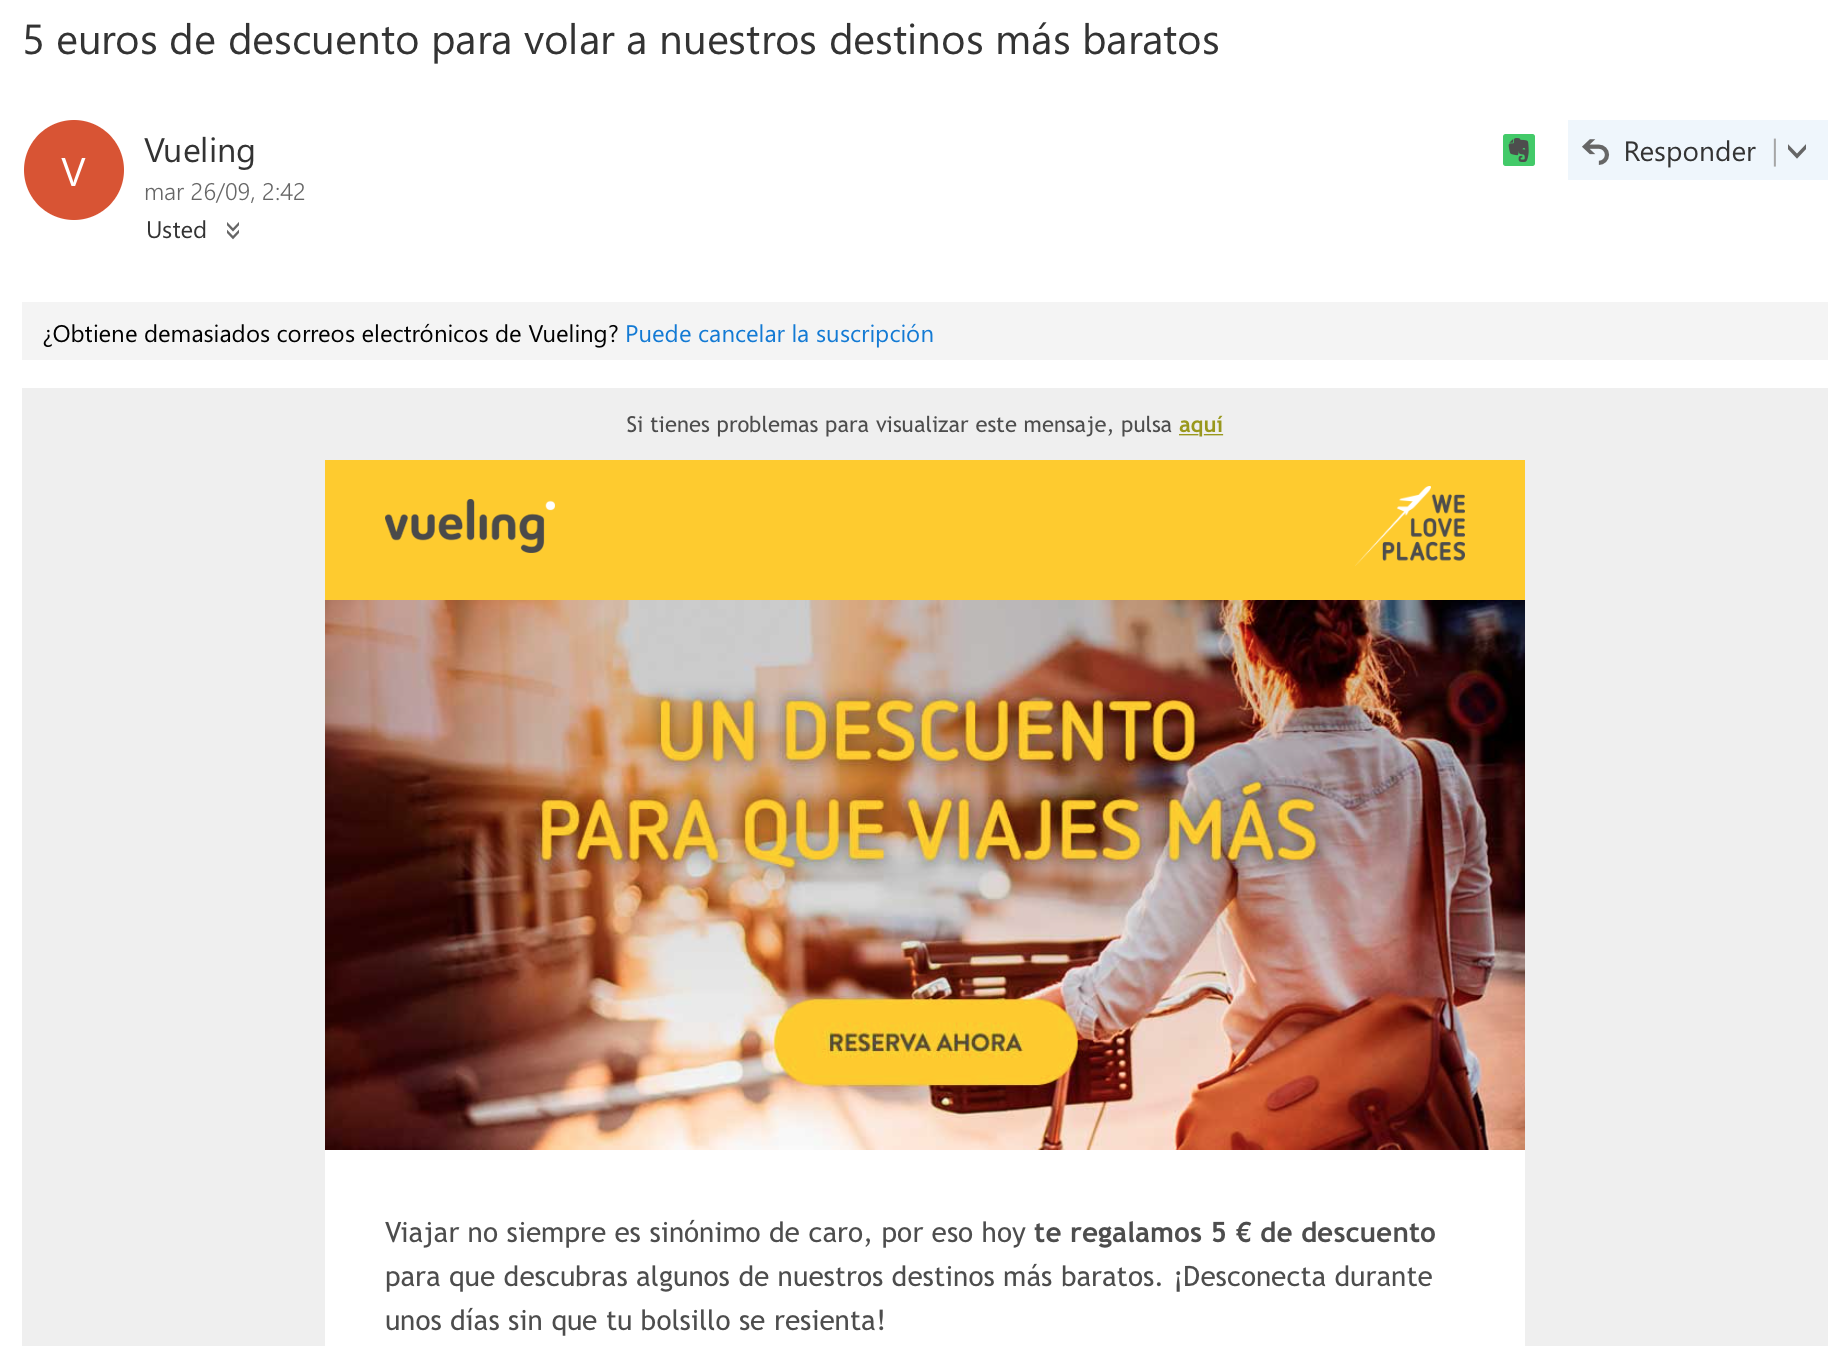 email marketing: Vueling